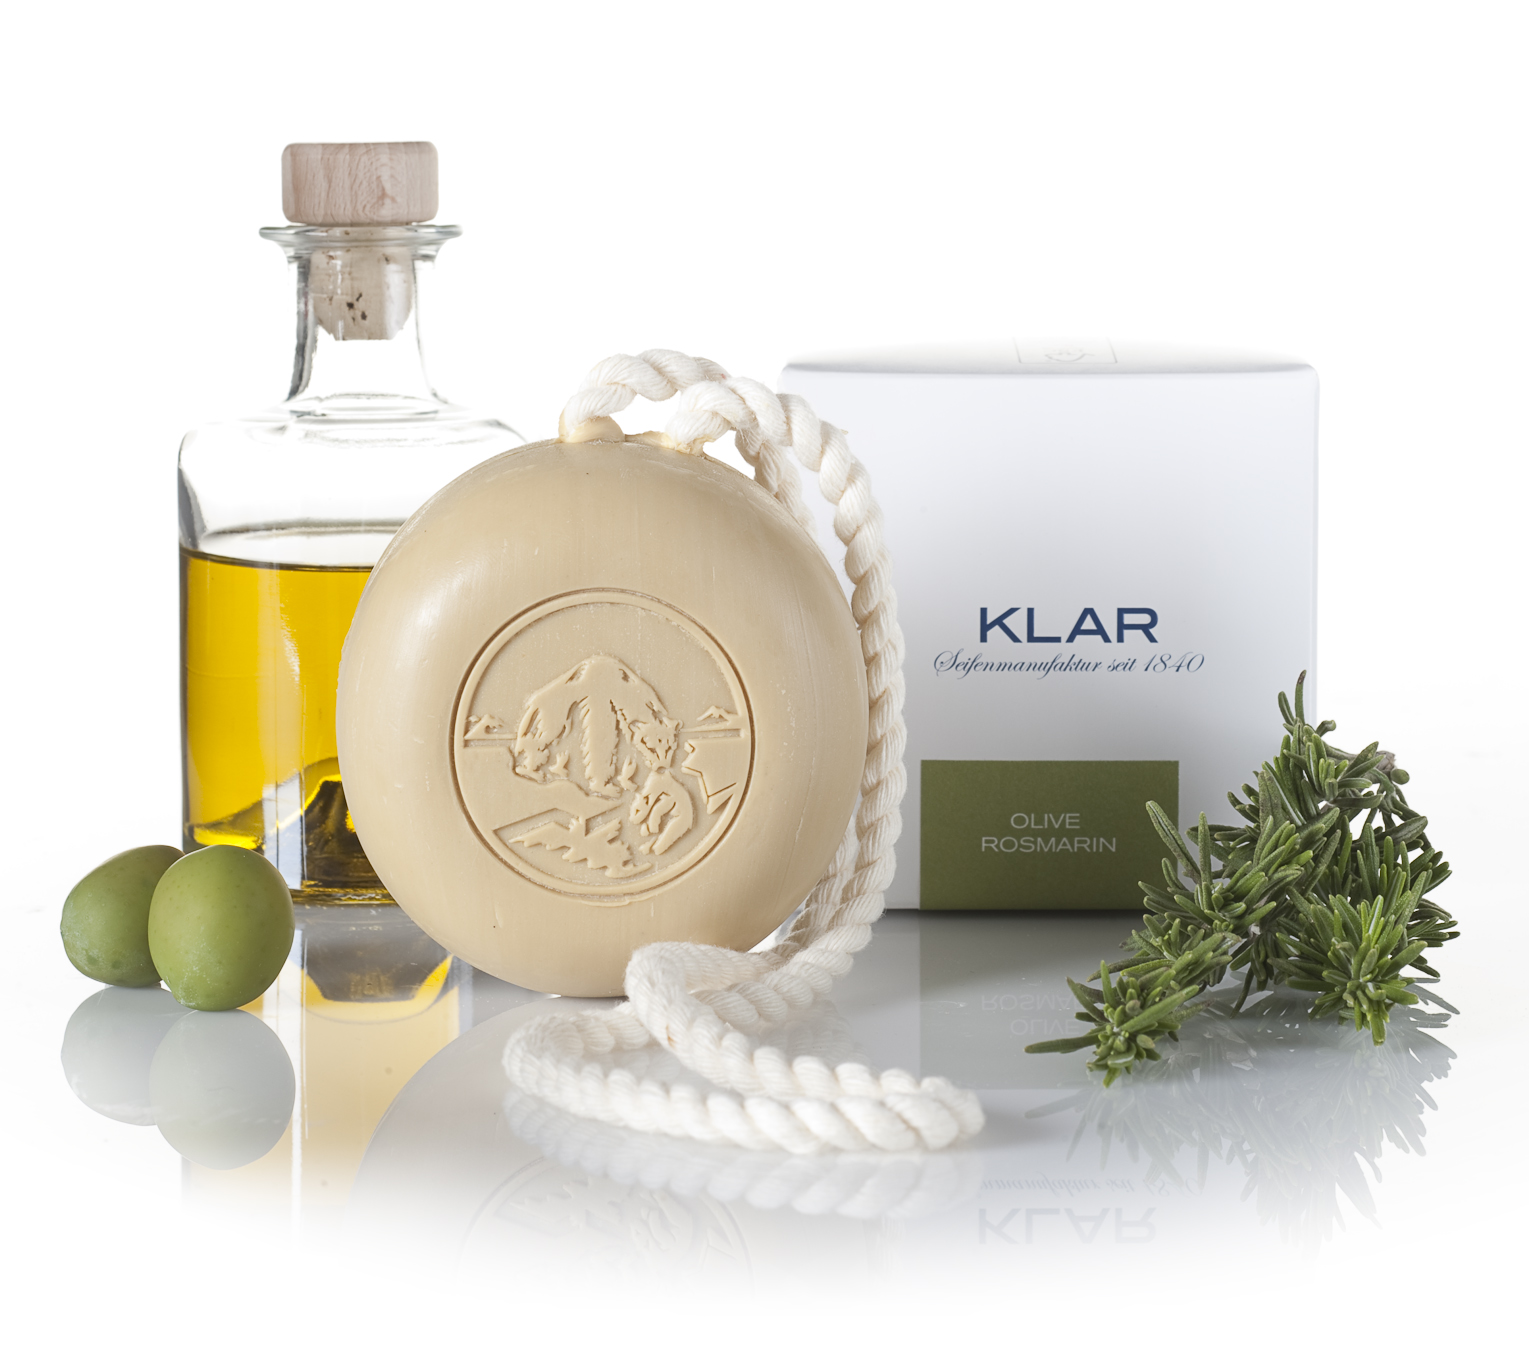 Klar Olive & Rosemary Hair and Body Soap on a Rope 250g